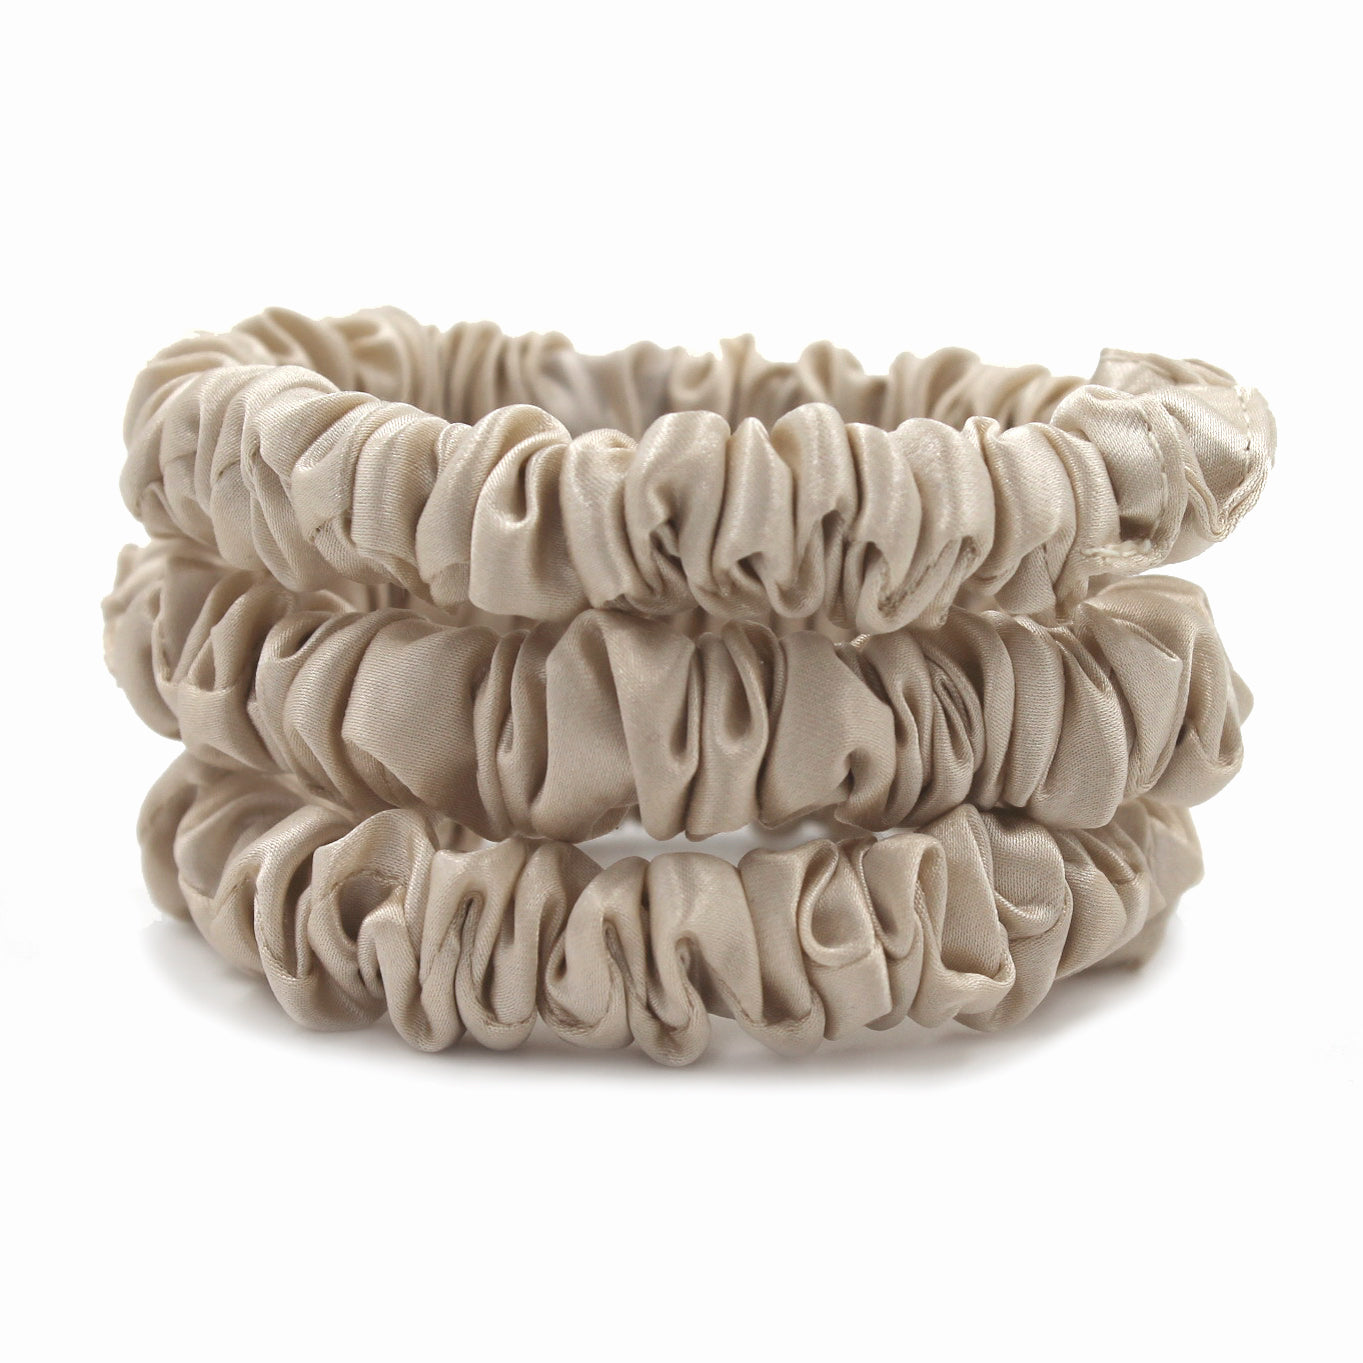 Sand Color Silk Scrunchies by Mulberry Park Silks